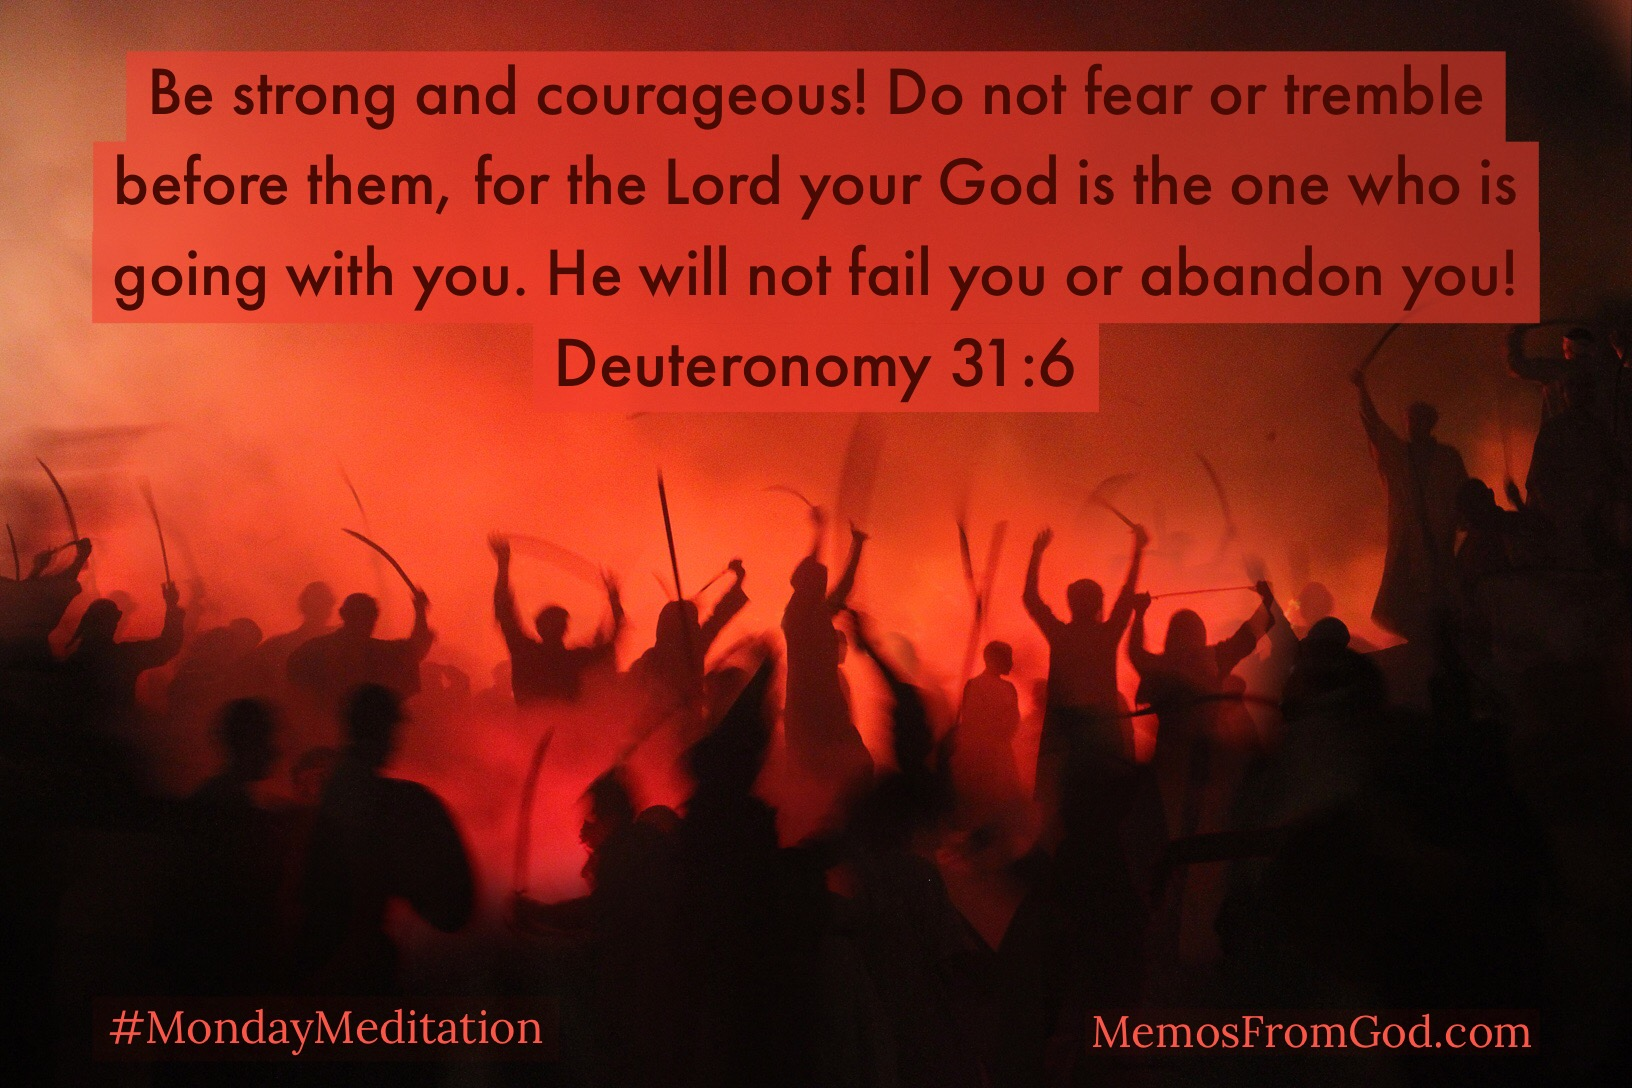 Be strong and courageous! Do not fear or tremble before them, for the Lord your God is the one who is going with you. He will not fail you or abandon you! Deuteronomy 31:6